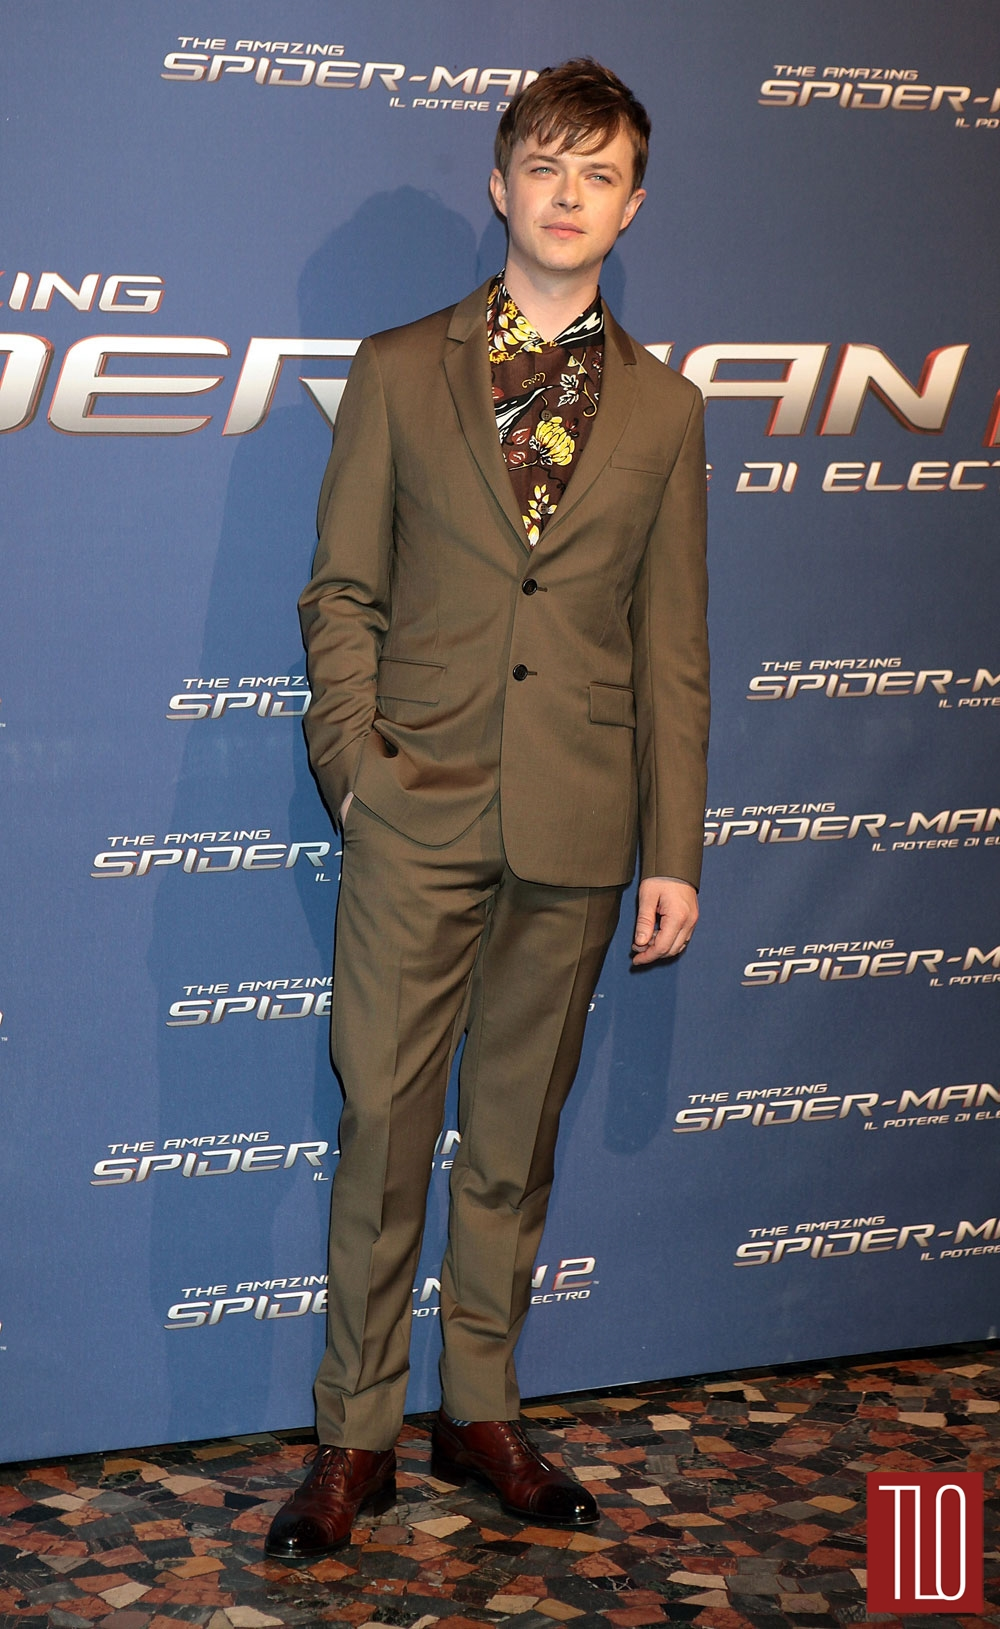 Dane-DeHaan-Spiderman-Paris-Premiere-Prada-Tom-Lorenzo-Site-TLO (1)